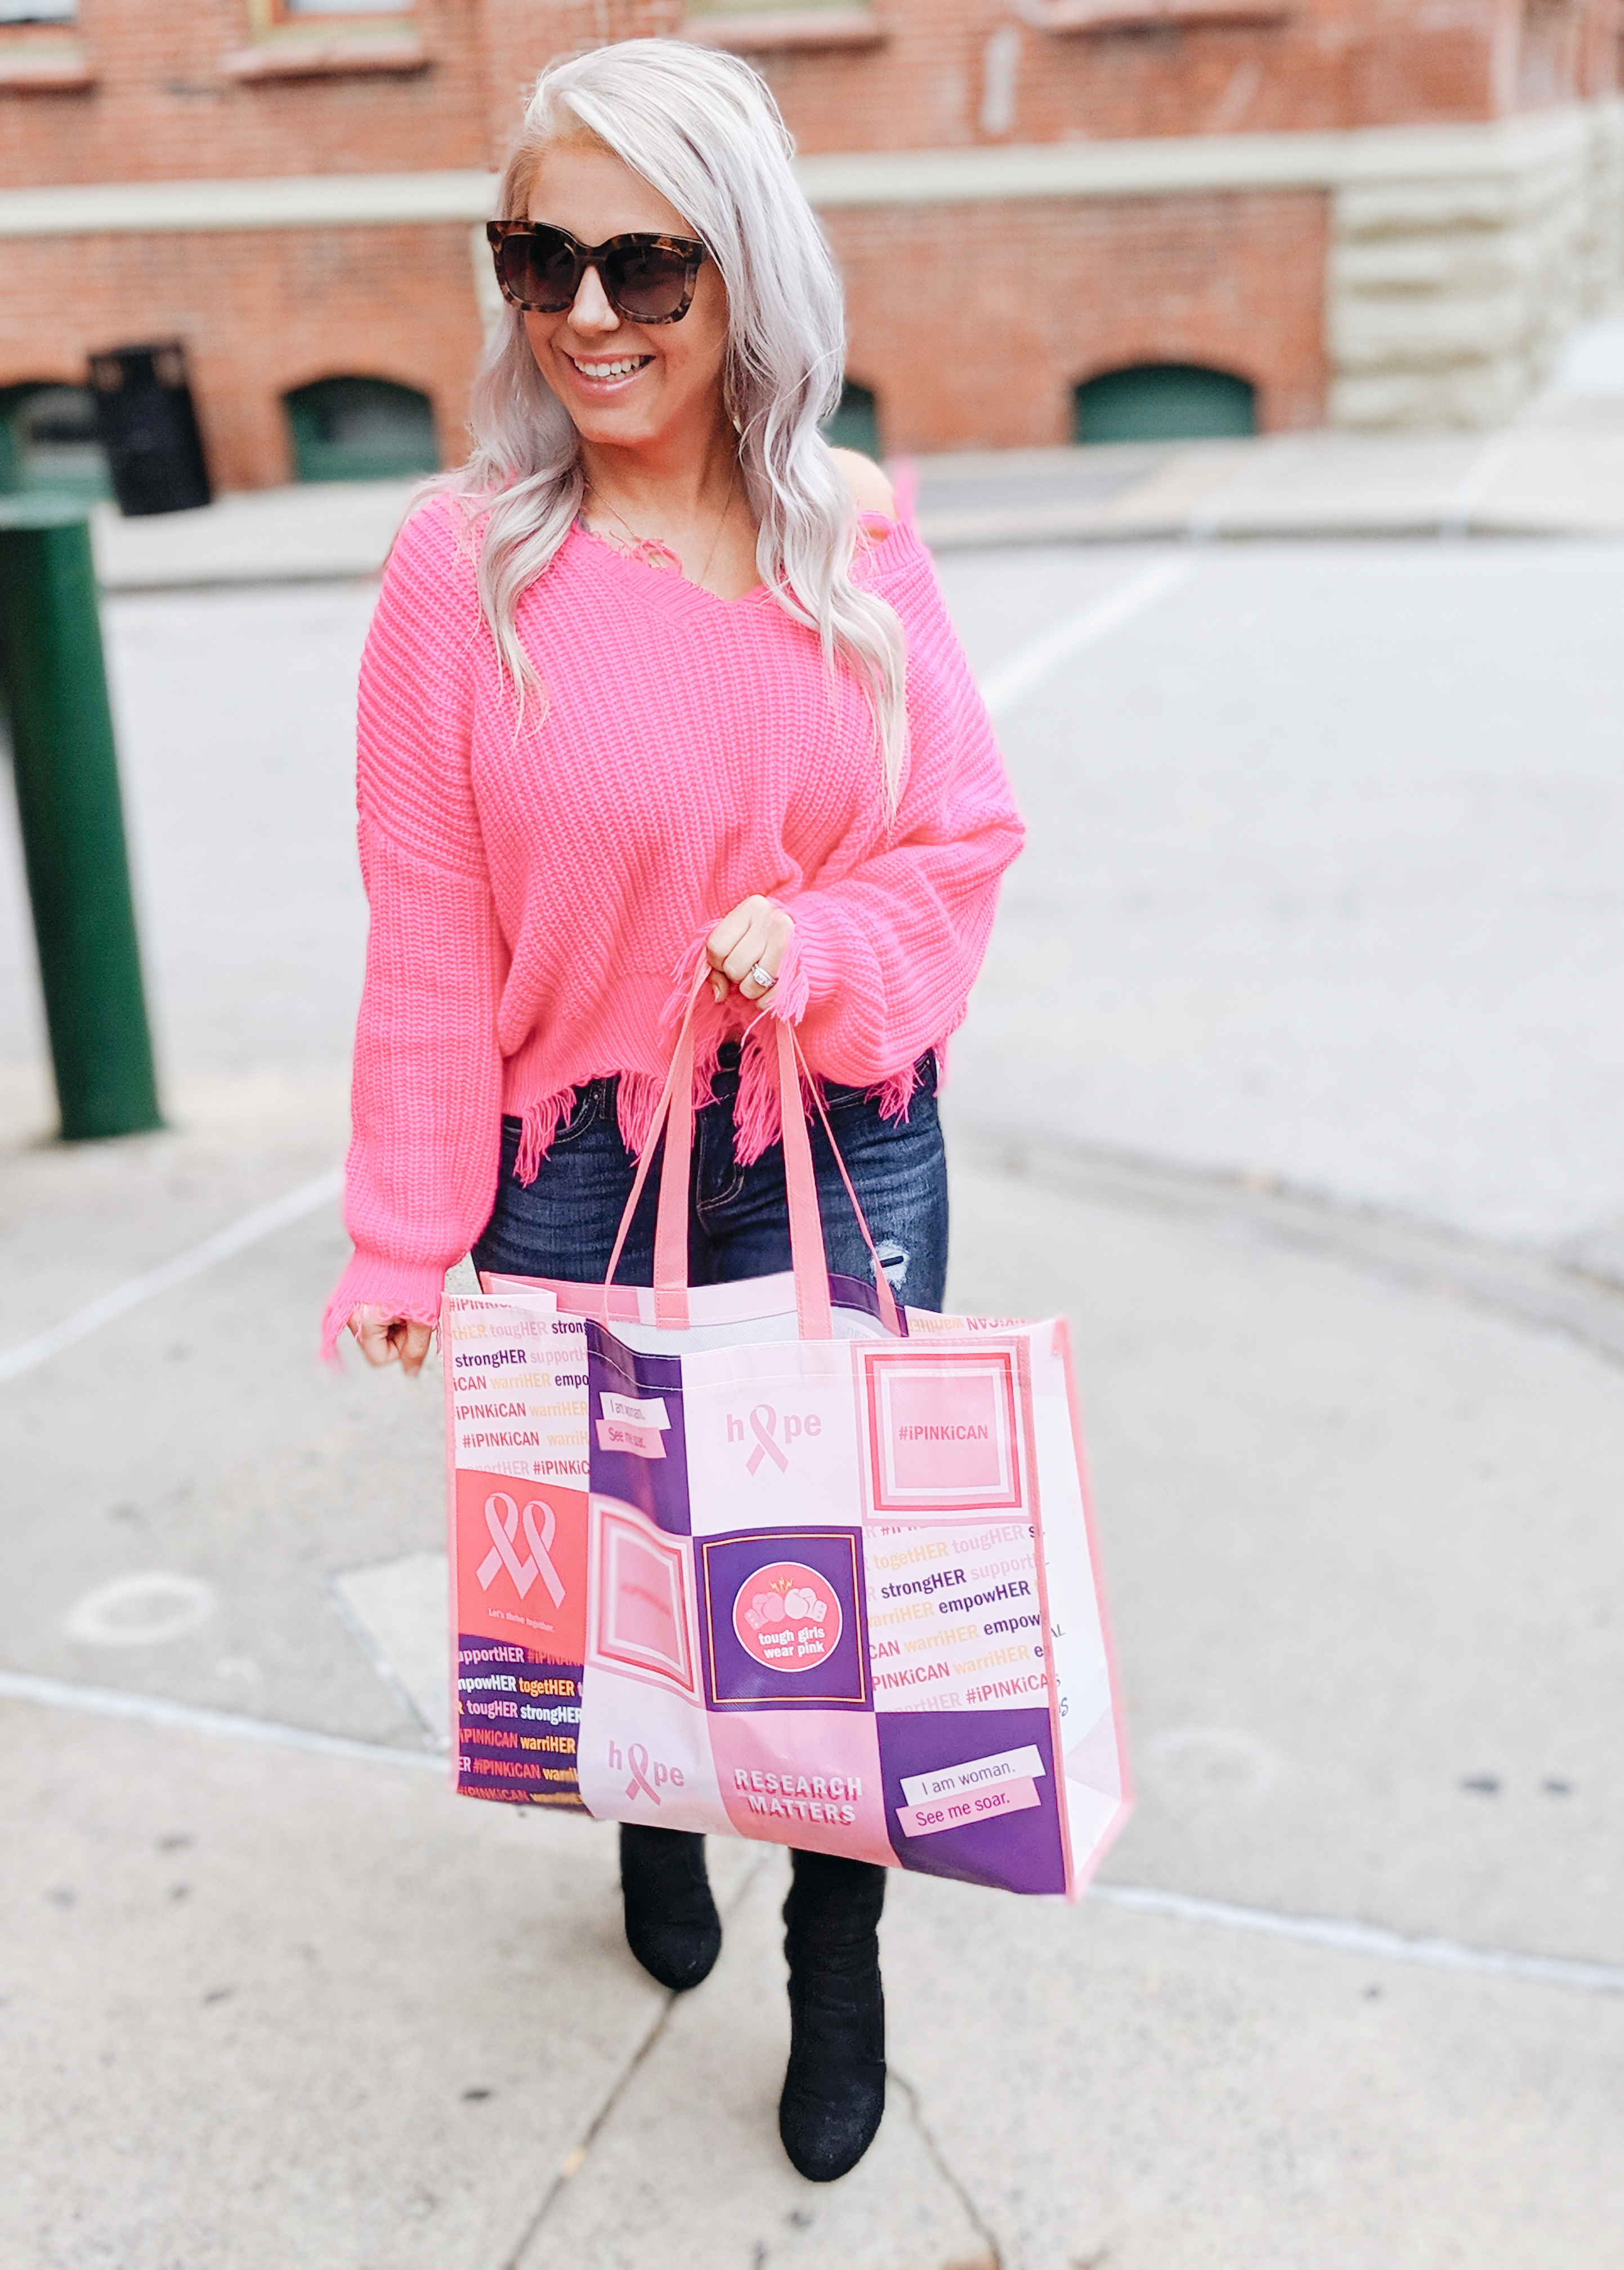 How to Support a Loved One with Breast Cancer: 5 Ways to Support Someone with Breast Cancer, in honor of Breast Cancer Awareness Month. Gordmans is teaming up with the Breast Cancer Research Foundation to make it easier than ever for everyone to make a difference. Read on to find out how! #sponsored #ipinkican #breastcancer #cancer #pinkoctober